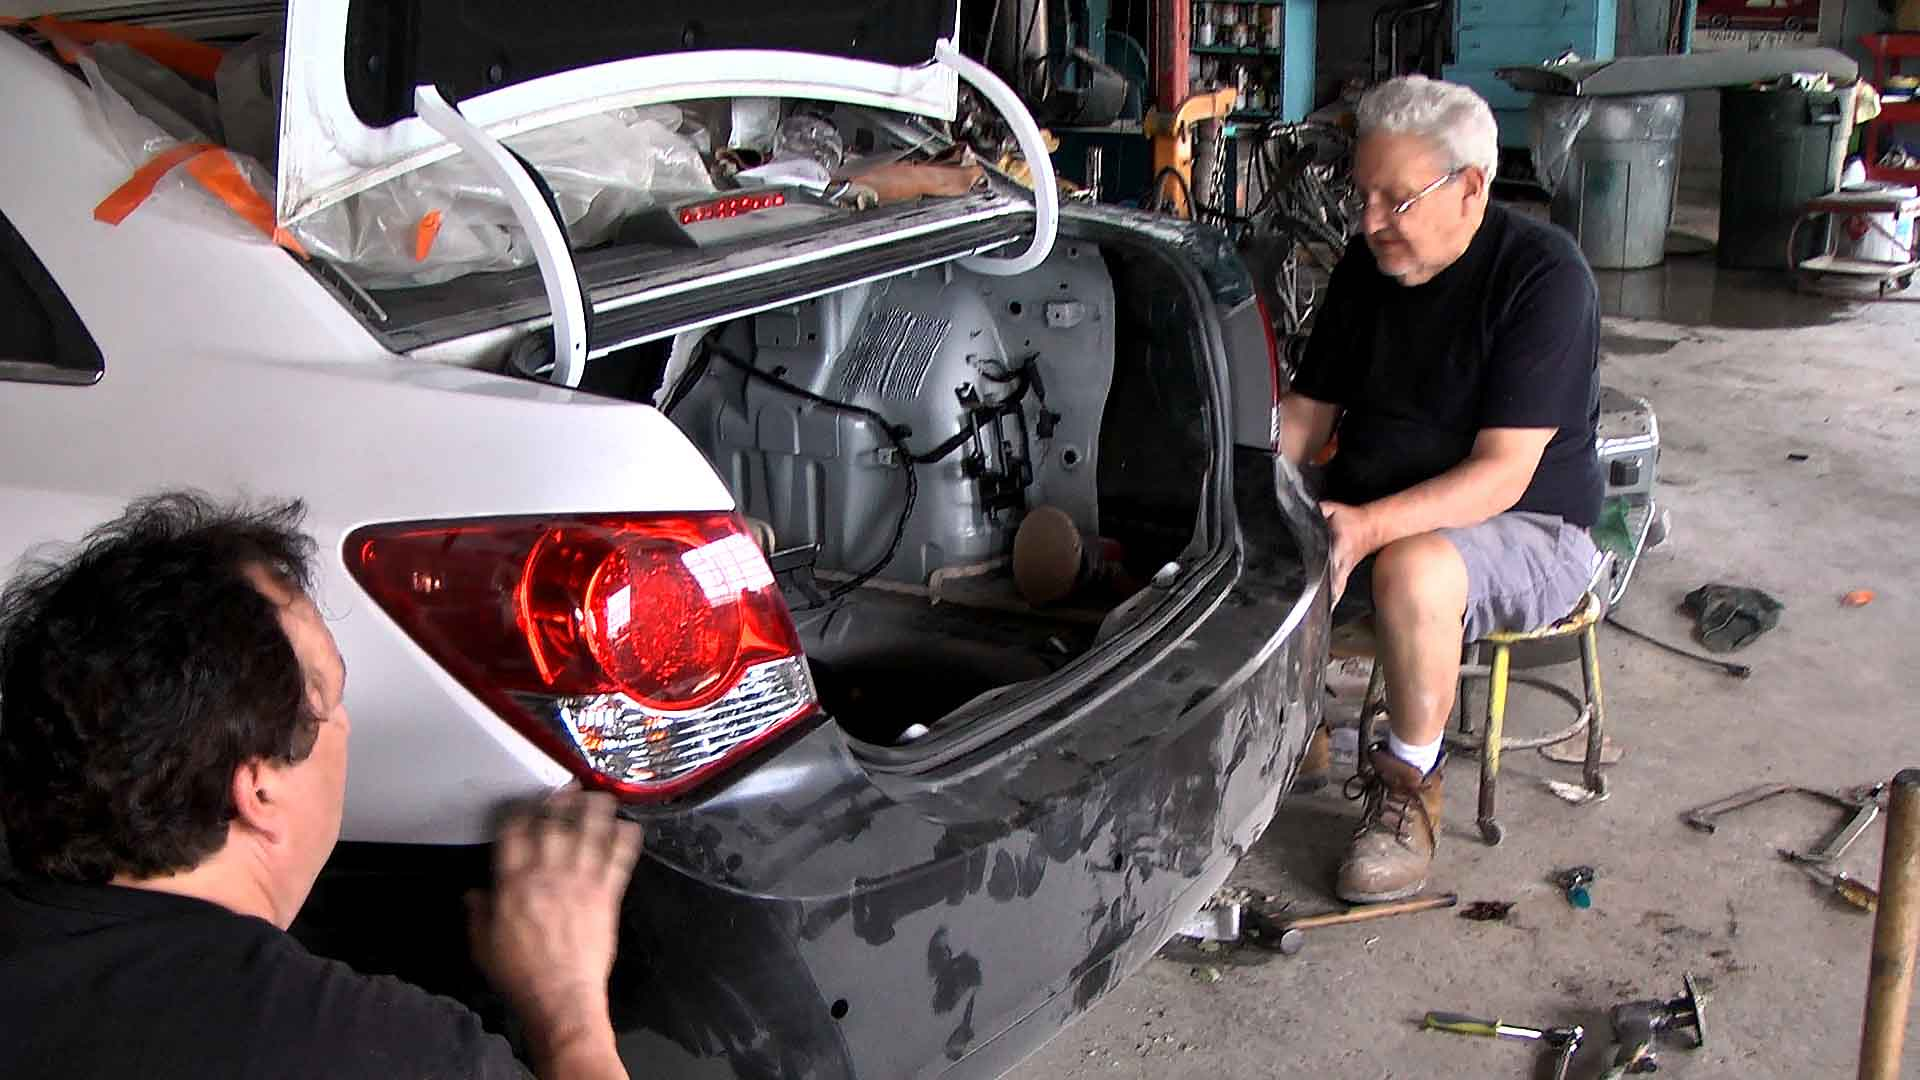 Torresdale Auto Body 19114 Collision Repair Northeast Philadelphia, Car Insurance Adjuster